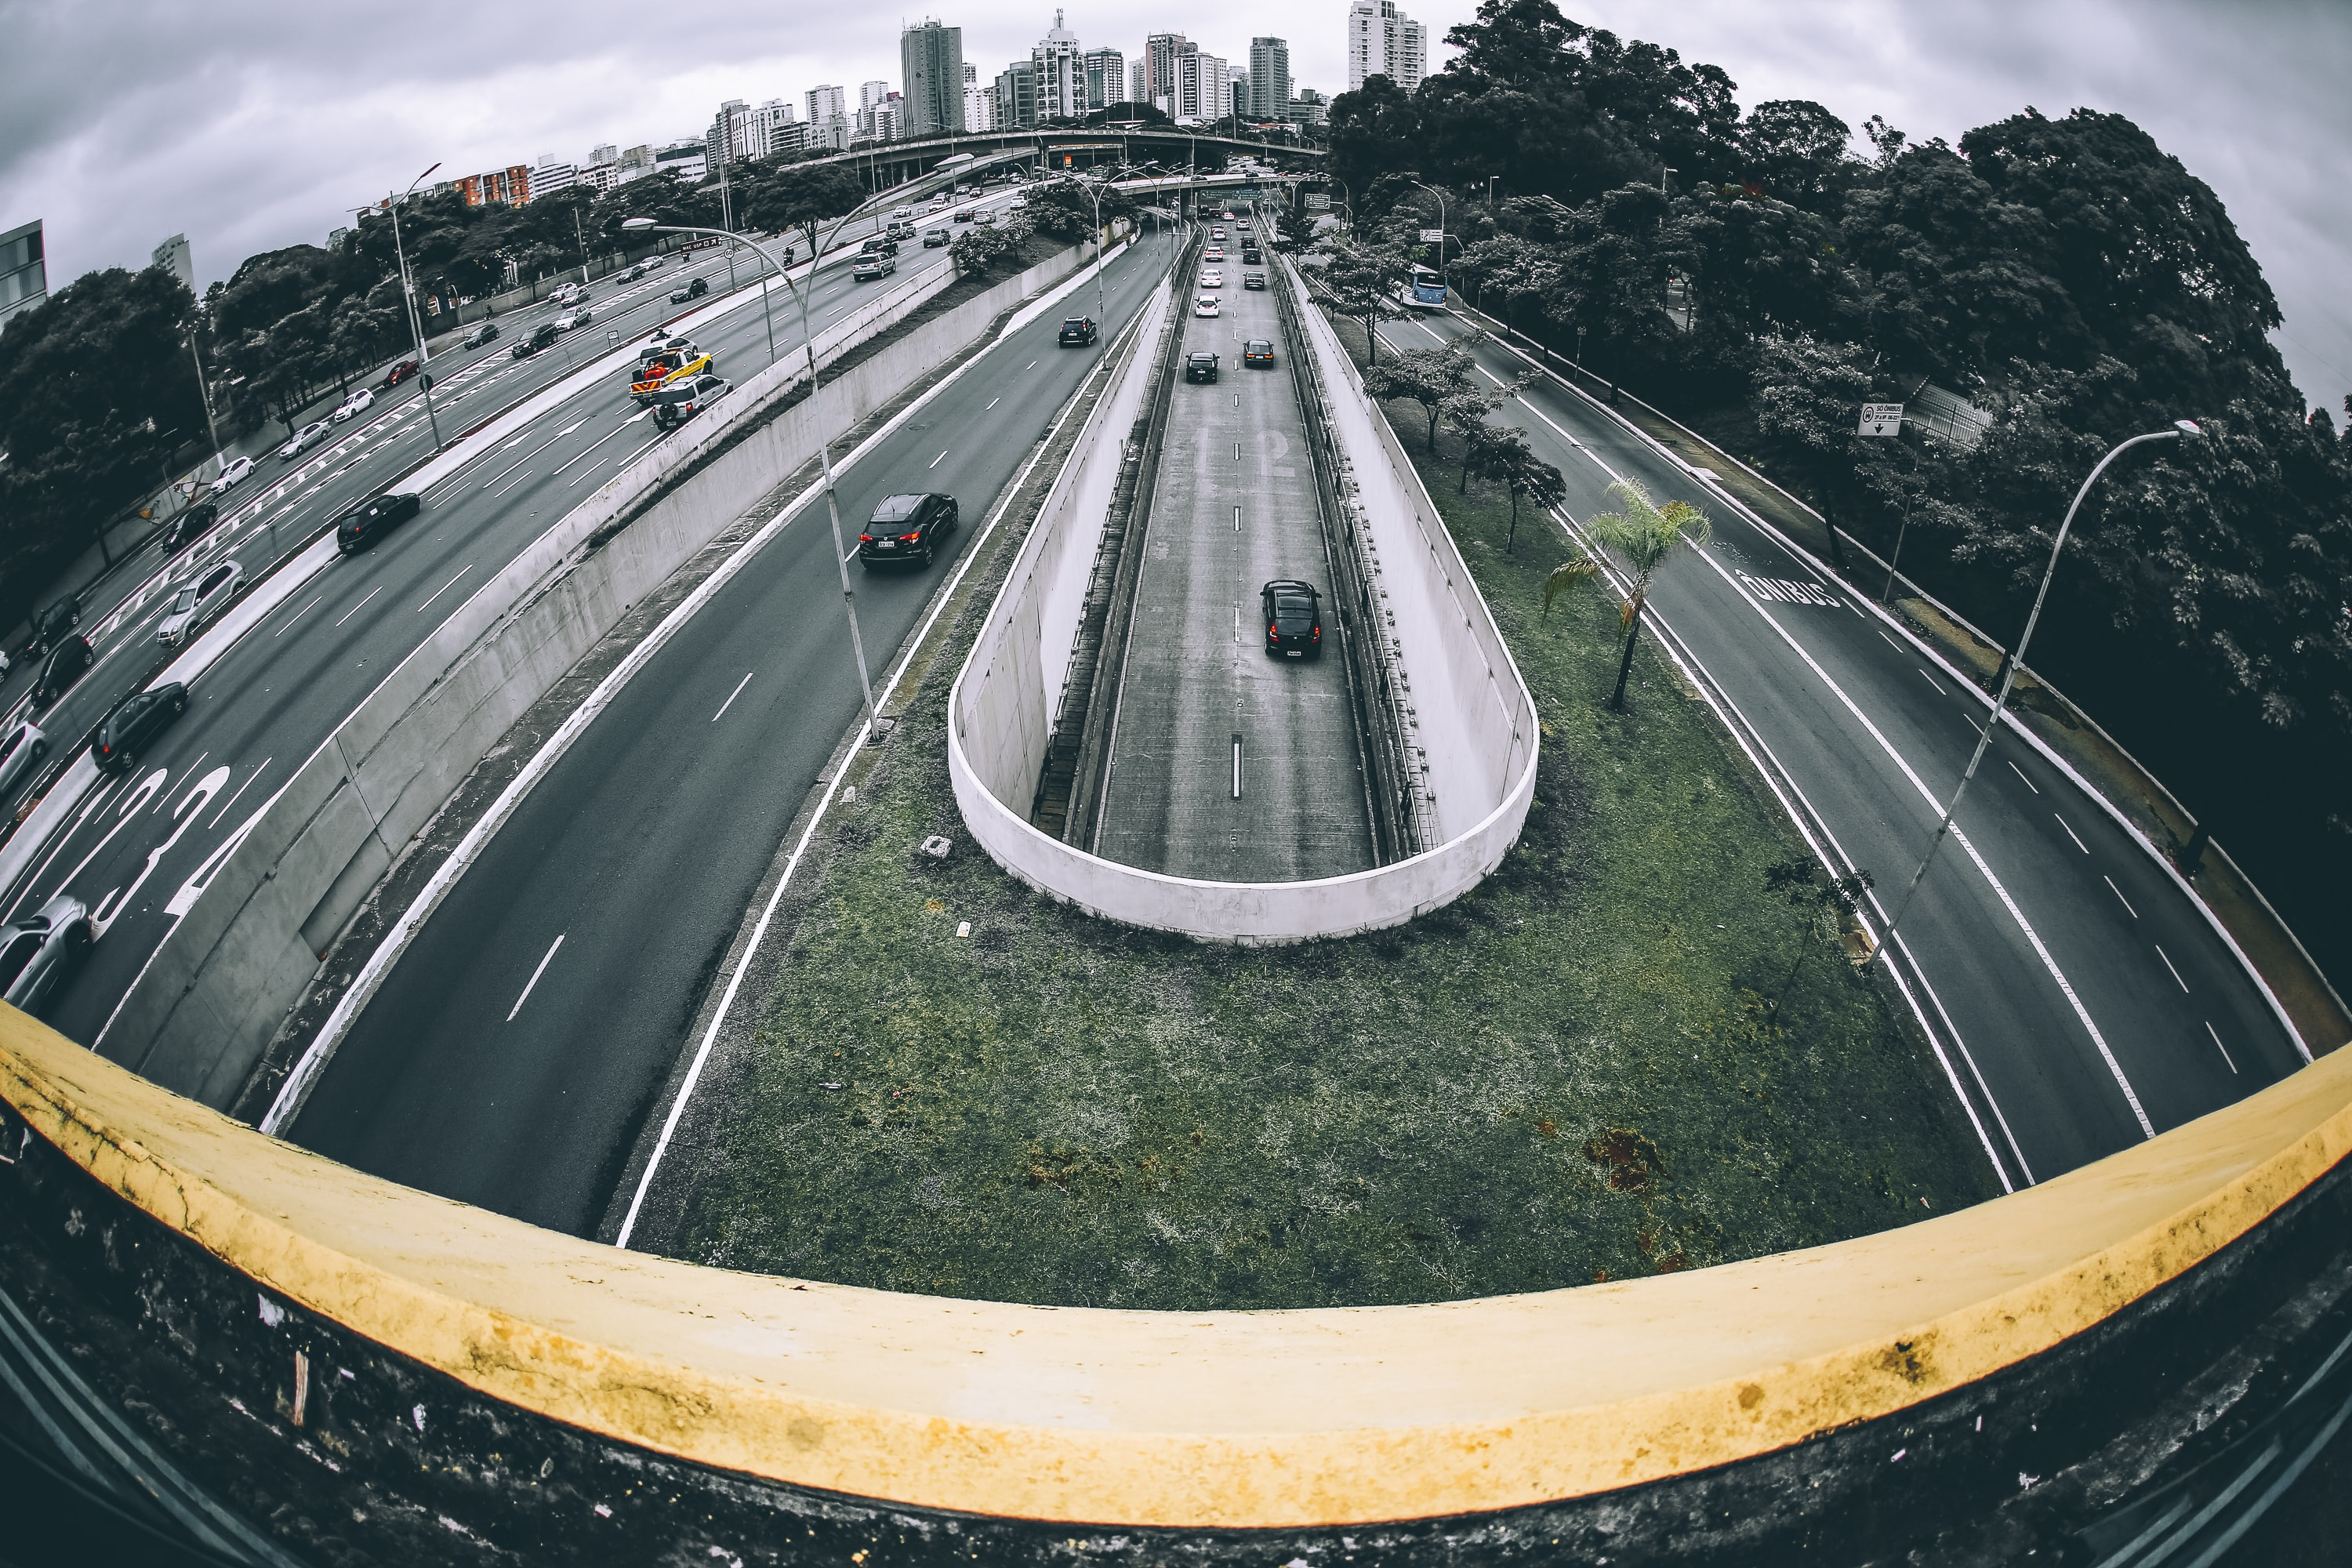 panoramic photography of highway during daytime